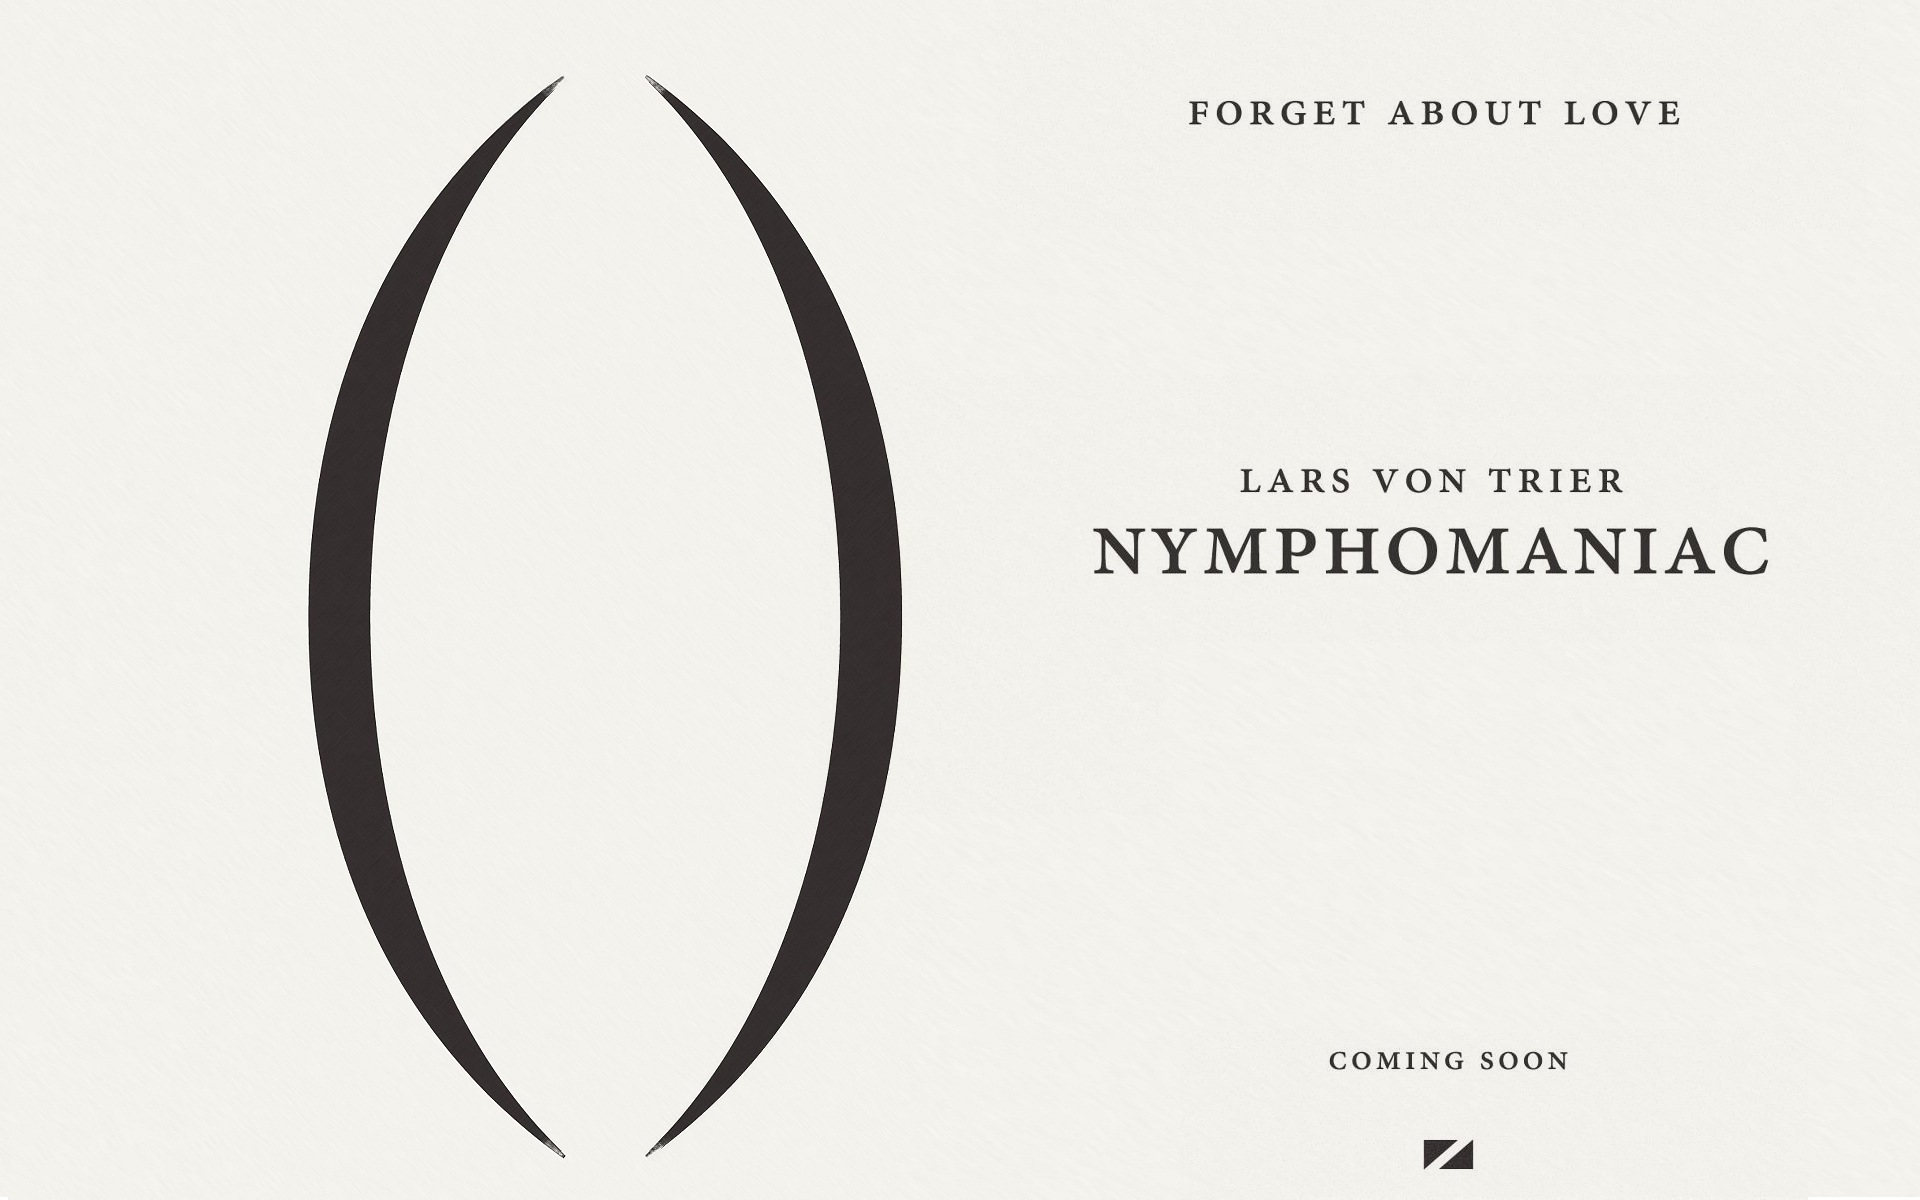 hight resolution of glasses text logo circle brand eye shape line presentation font diagram charlotte gainsbourg nymphomaniac lars von